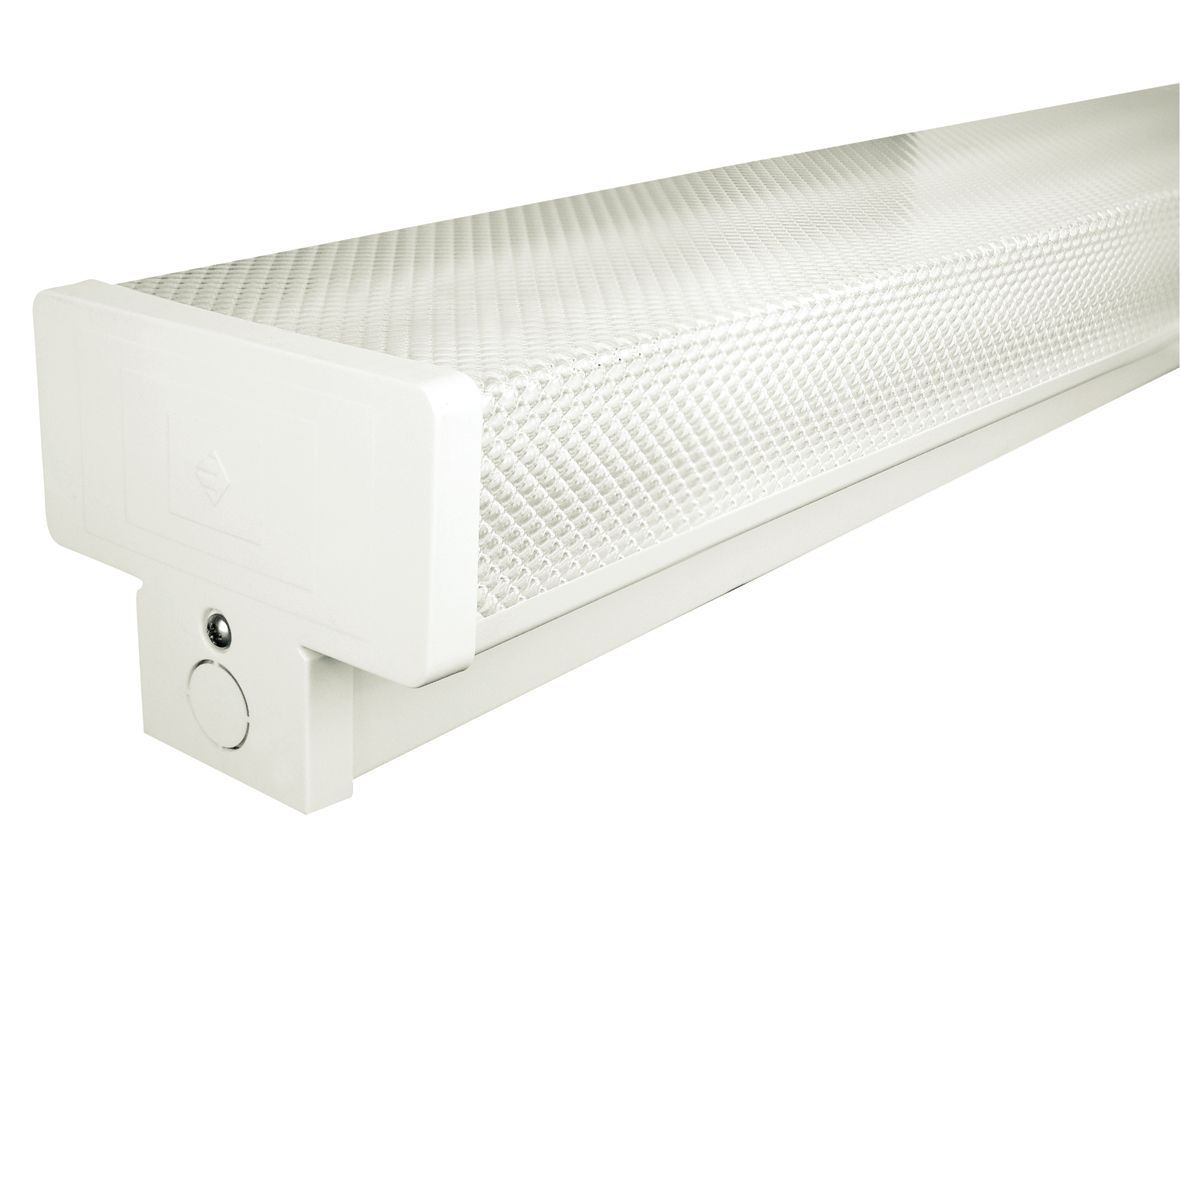 Linkable T5 Fluorescent Batten For Use Under Kitchen Cabinets: DIY At B&Q